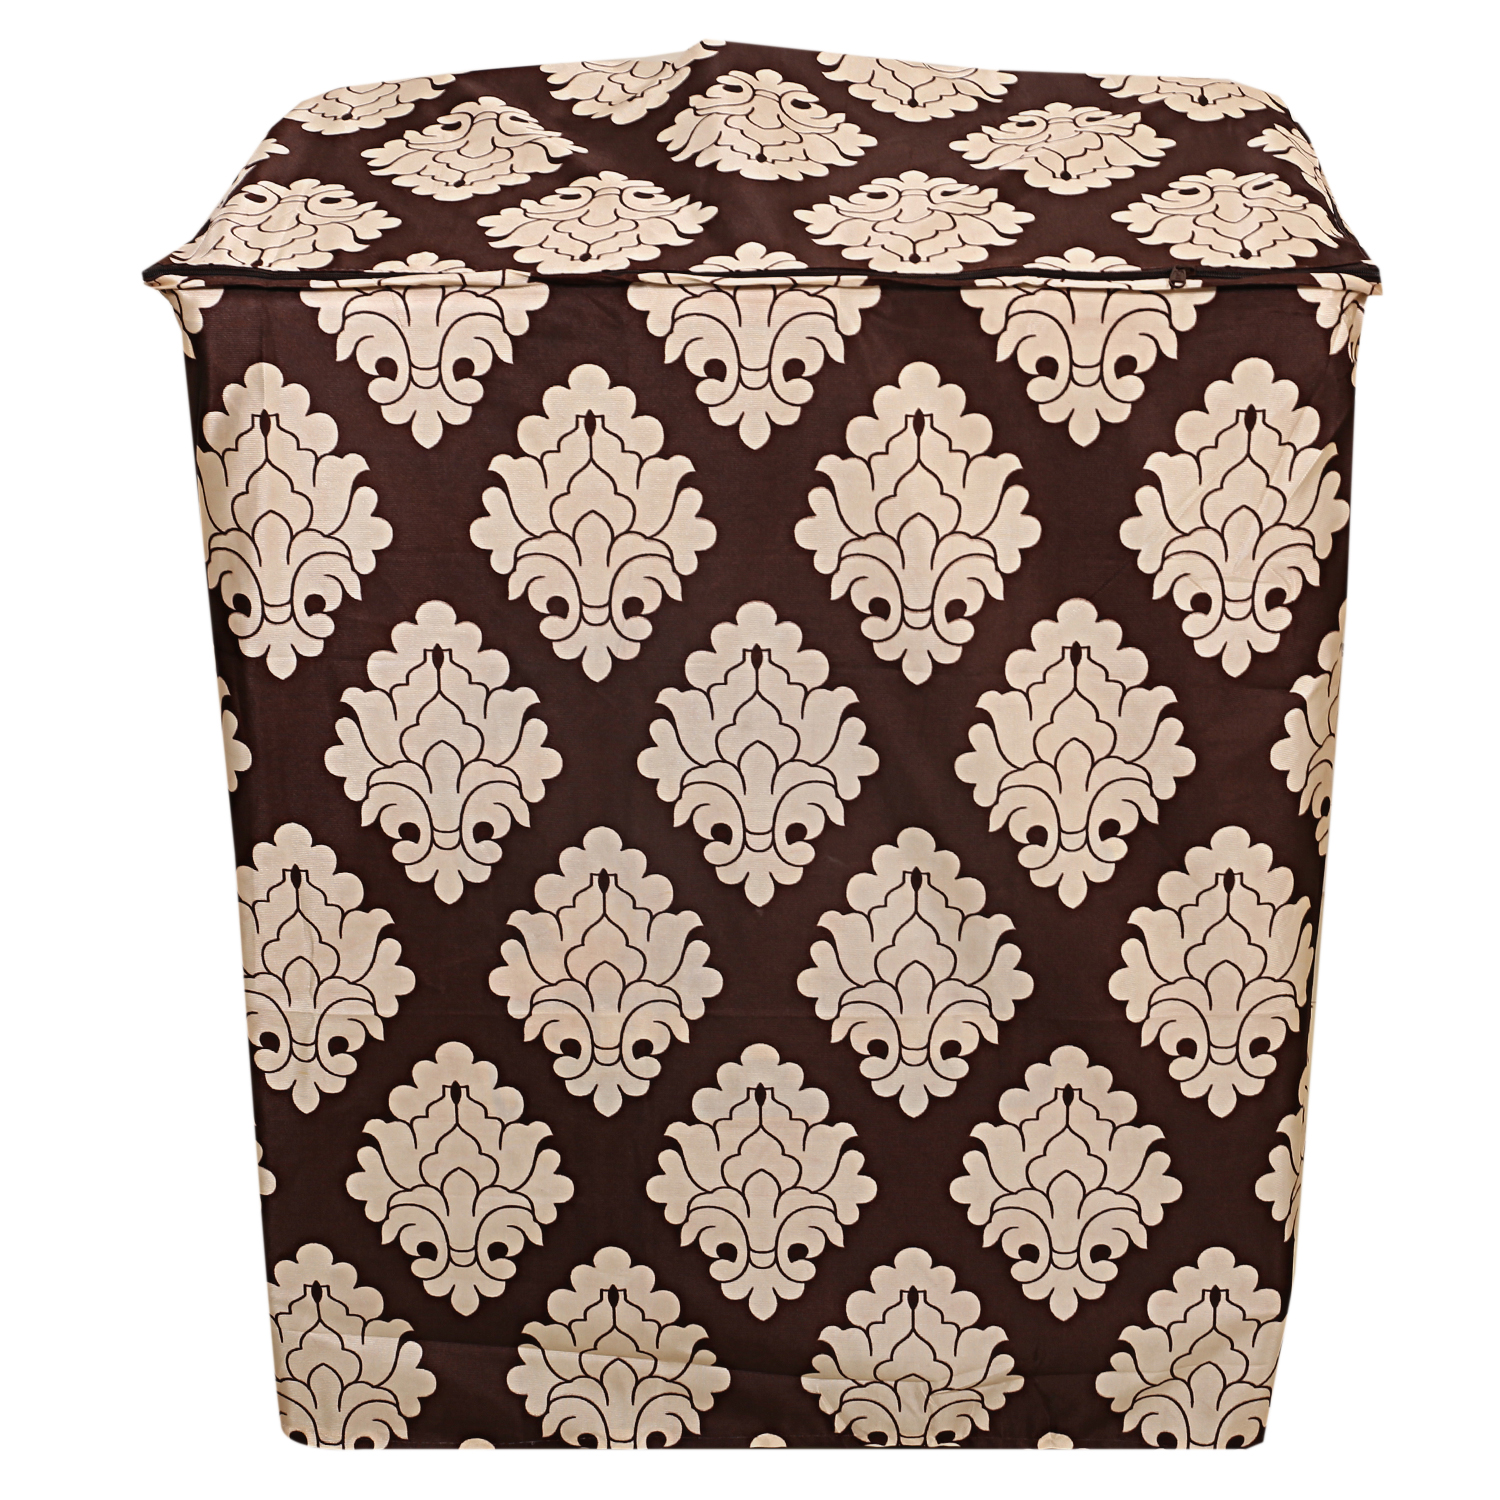 Kuber Industries Fabric Top Load Semi Automatic Washing Machine Cover (Brown)